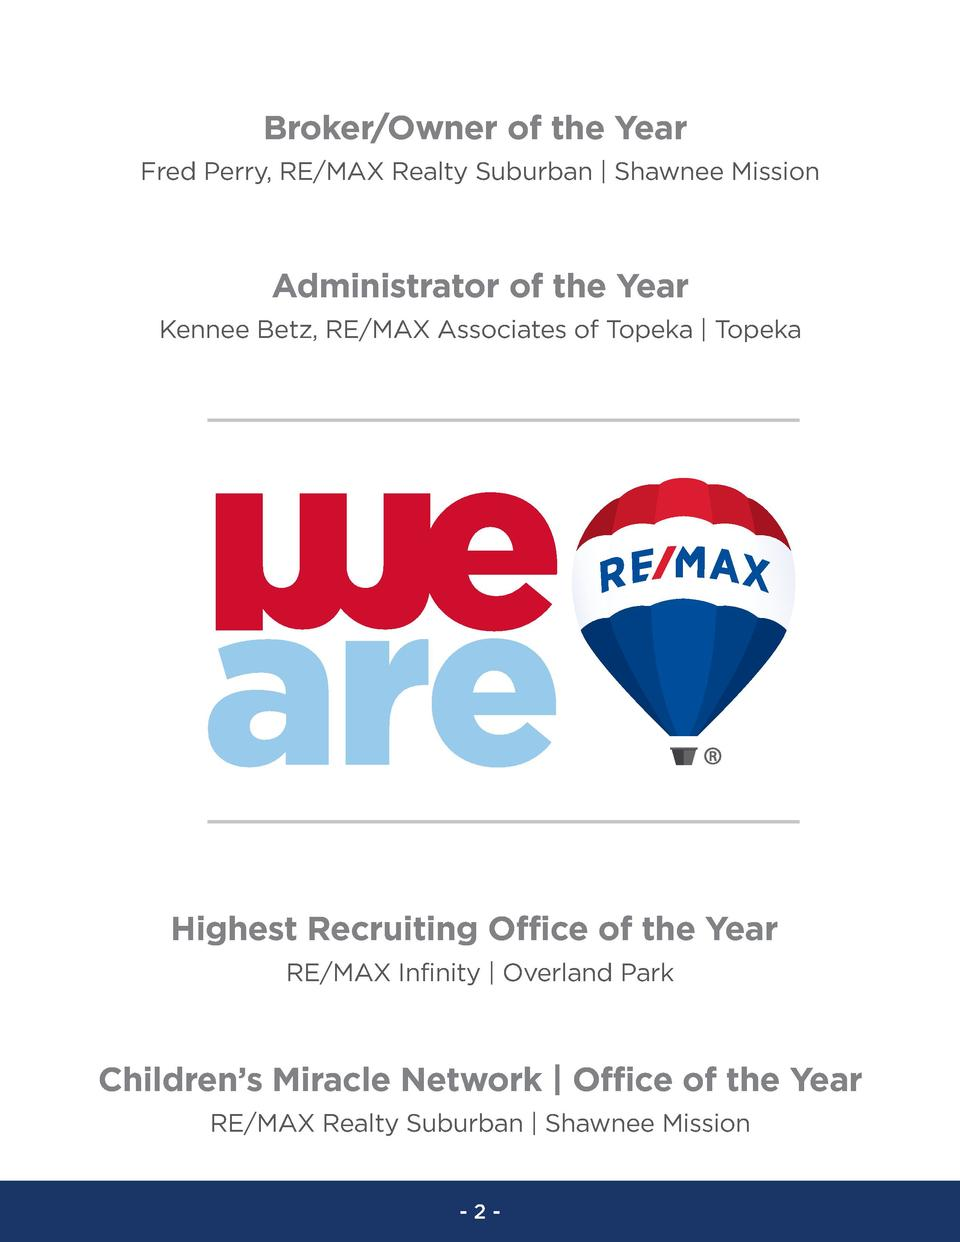 Broker Owner of the Year Fred Perry, RE MAX Realty Suburban   Shawnee Mission  Administrator of the Year Kennee Betz, RE M...